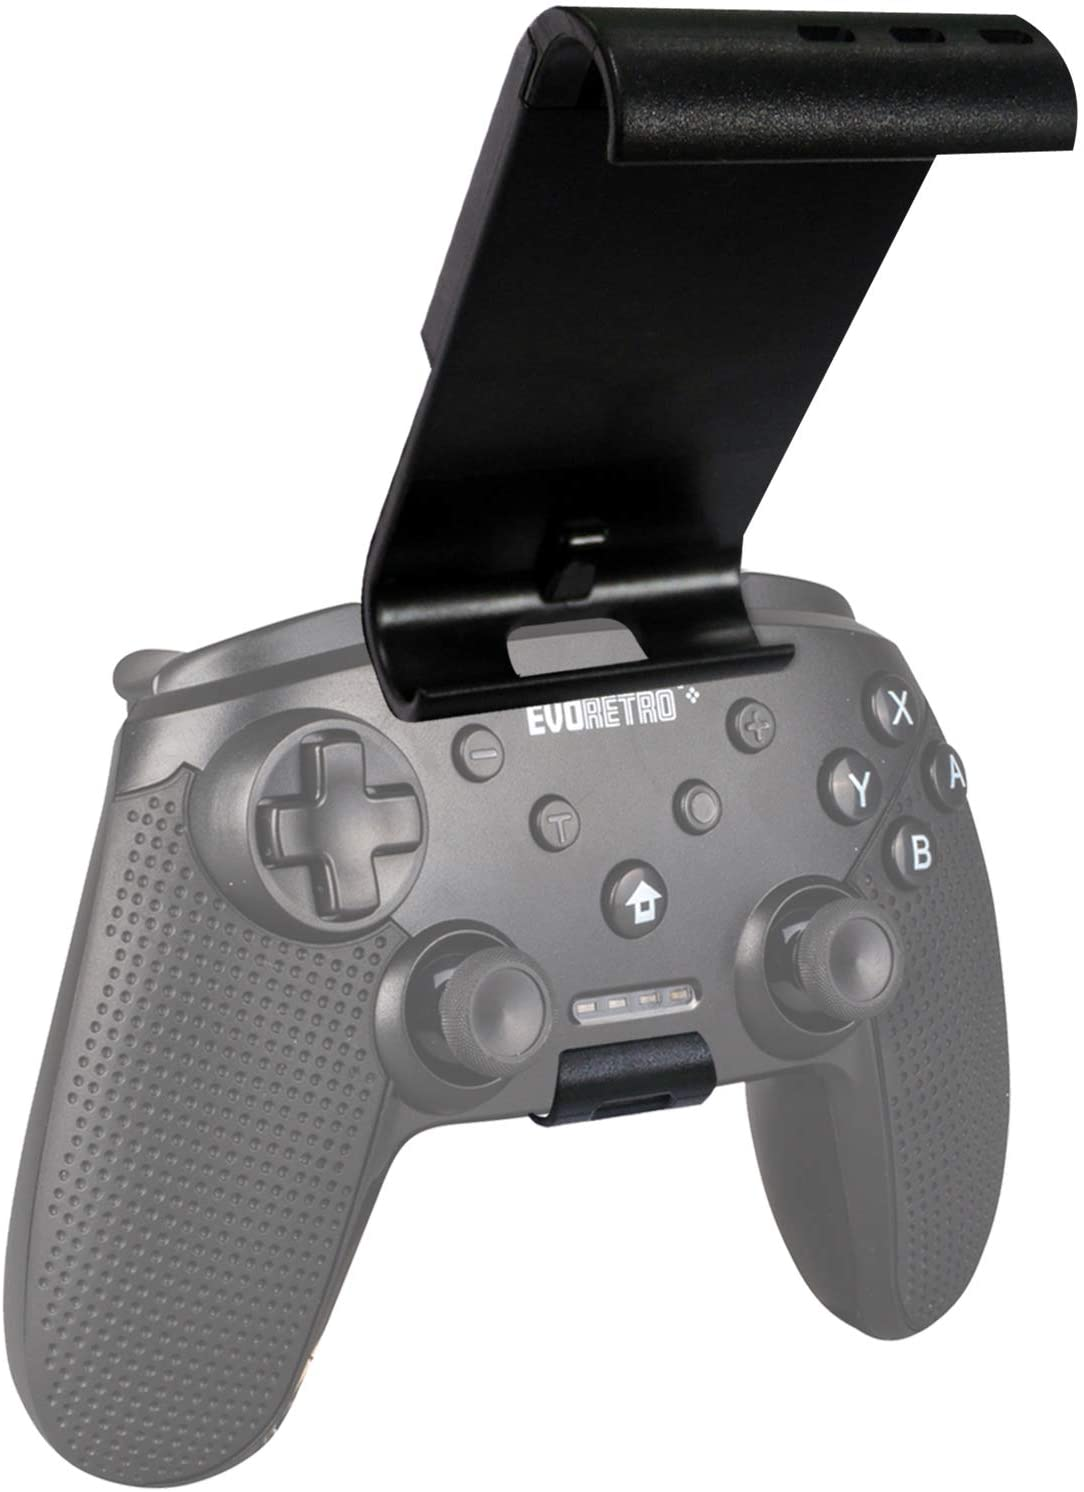 NINTENDO SWITCH CONTROLLER CLIP MOUNT (BLACK) - EvoRetro Lets Game